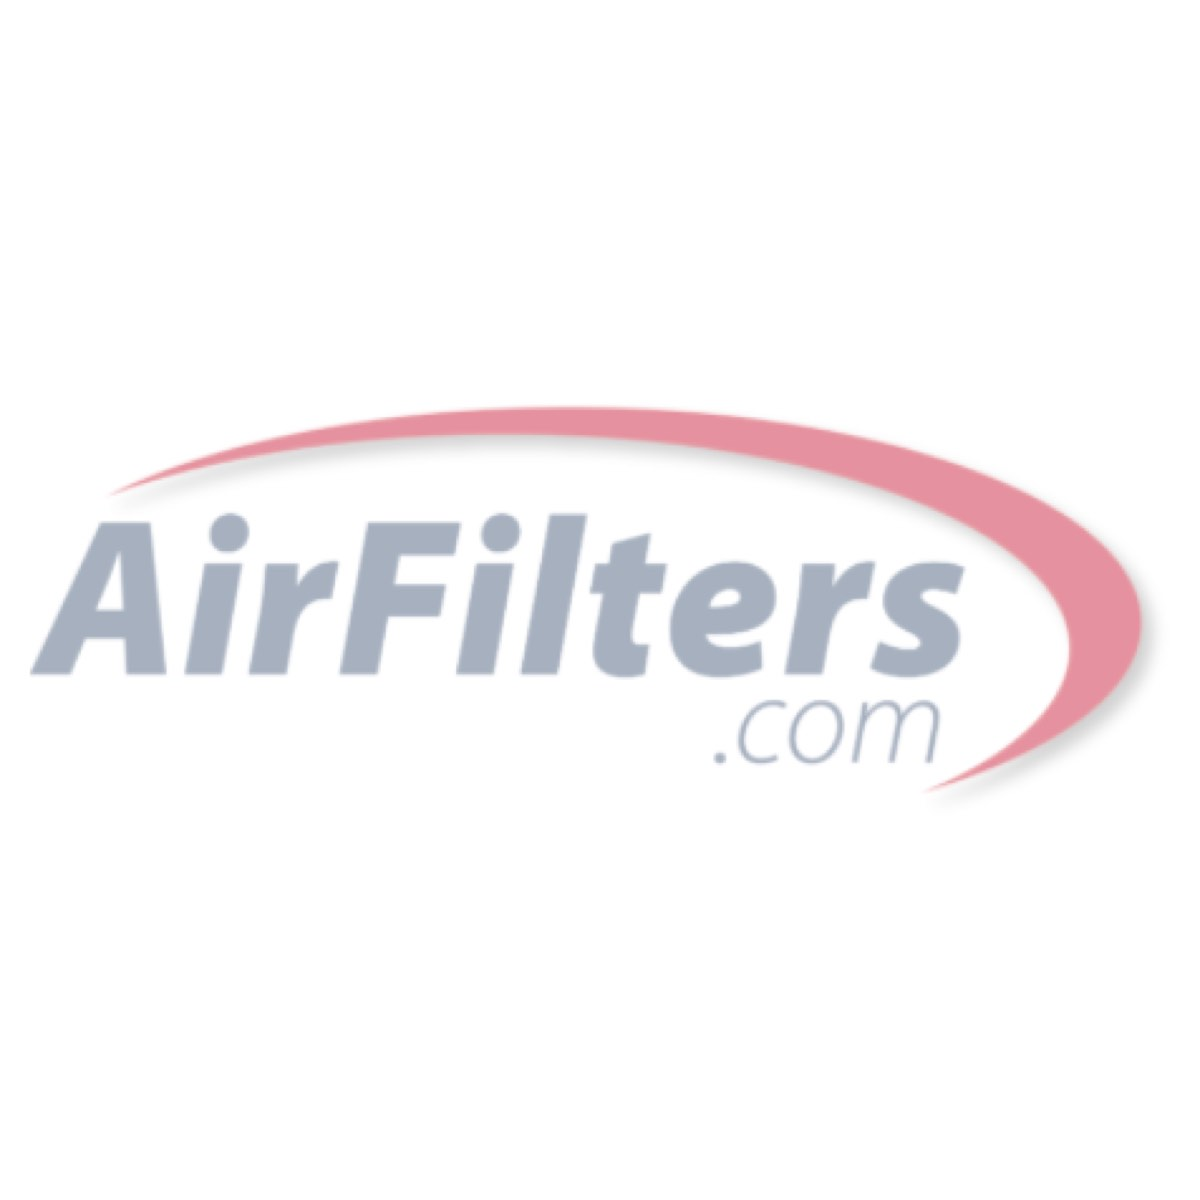 20x20x6 (19.5x19.5x6) Carrier® Air Purifier Carbon Filters by Carrier®